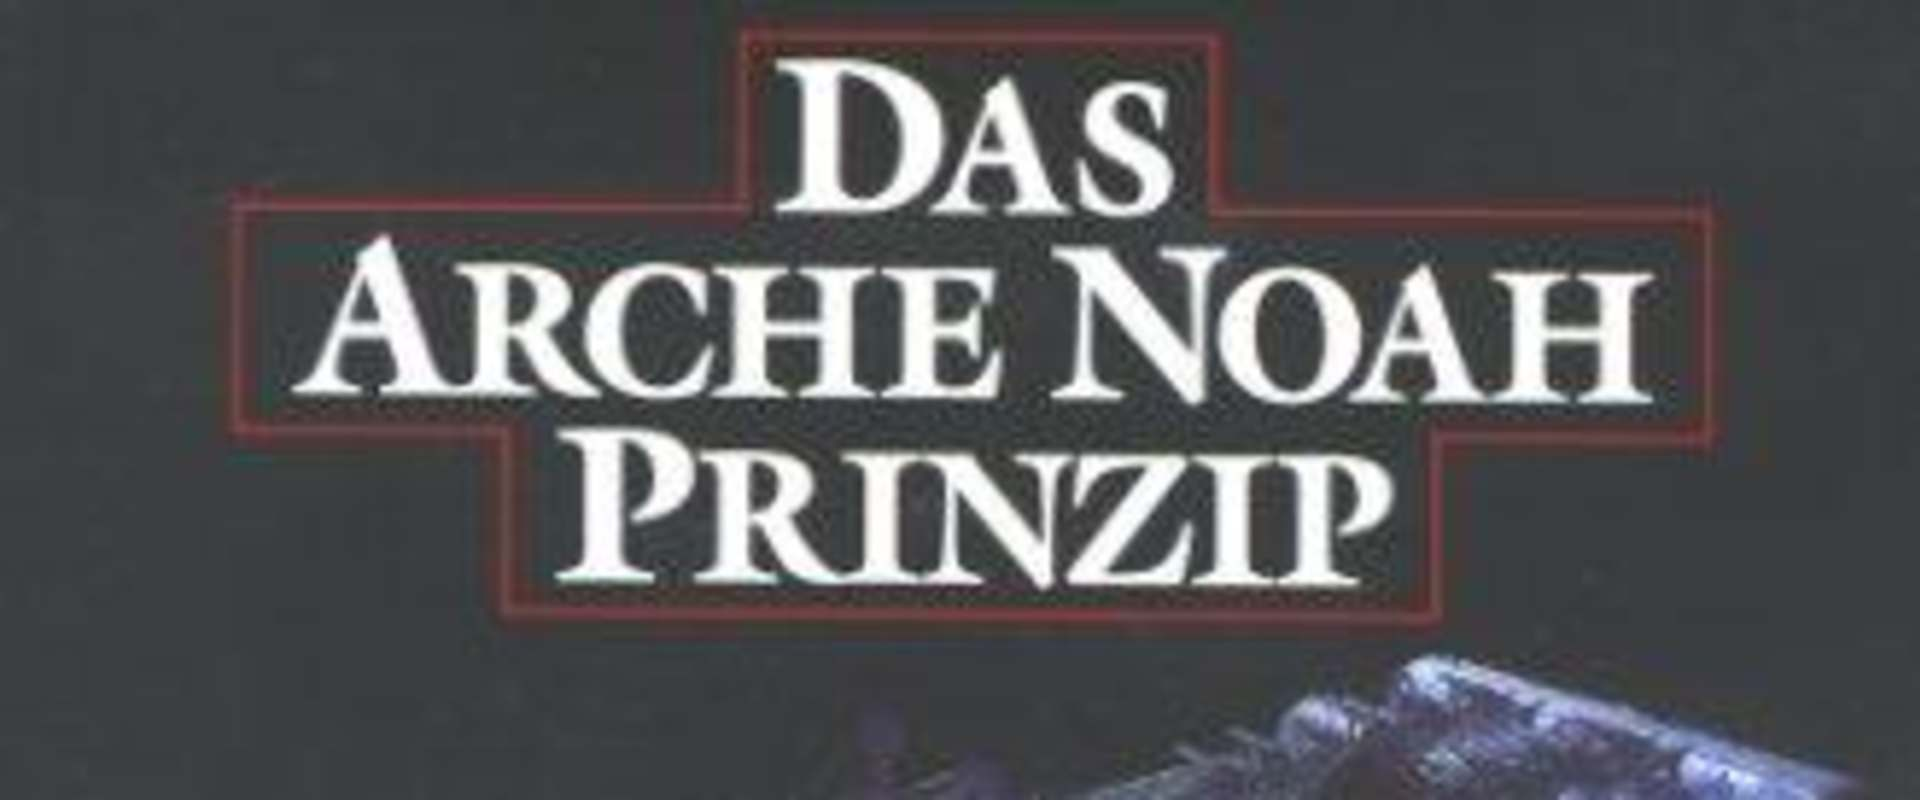 Das Arche Noah Prinzip background 2